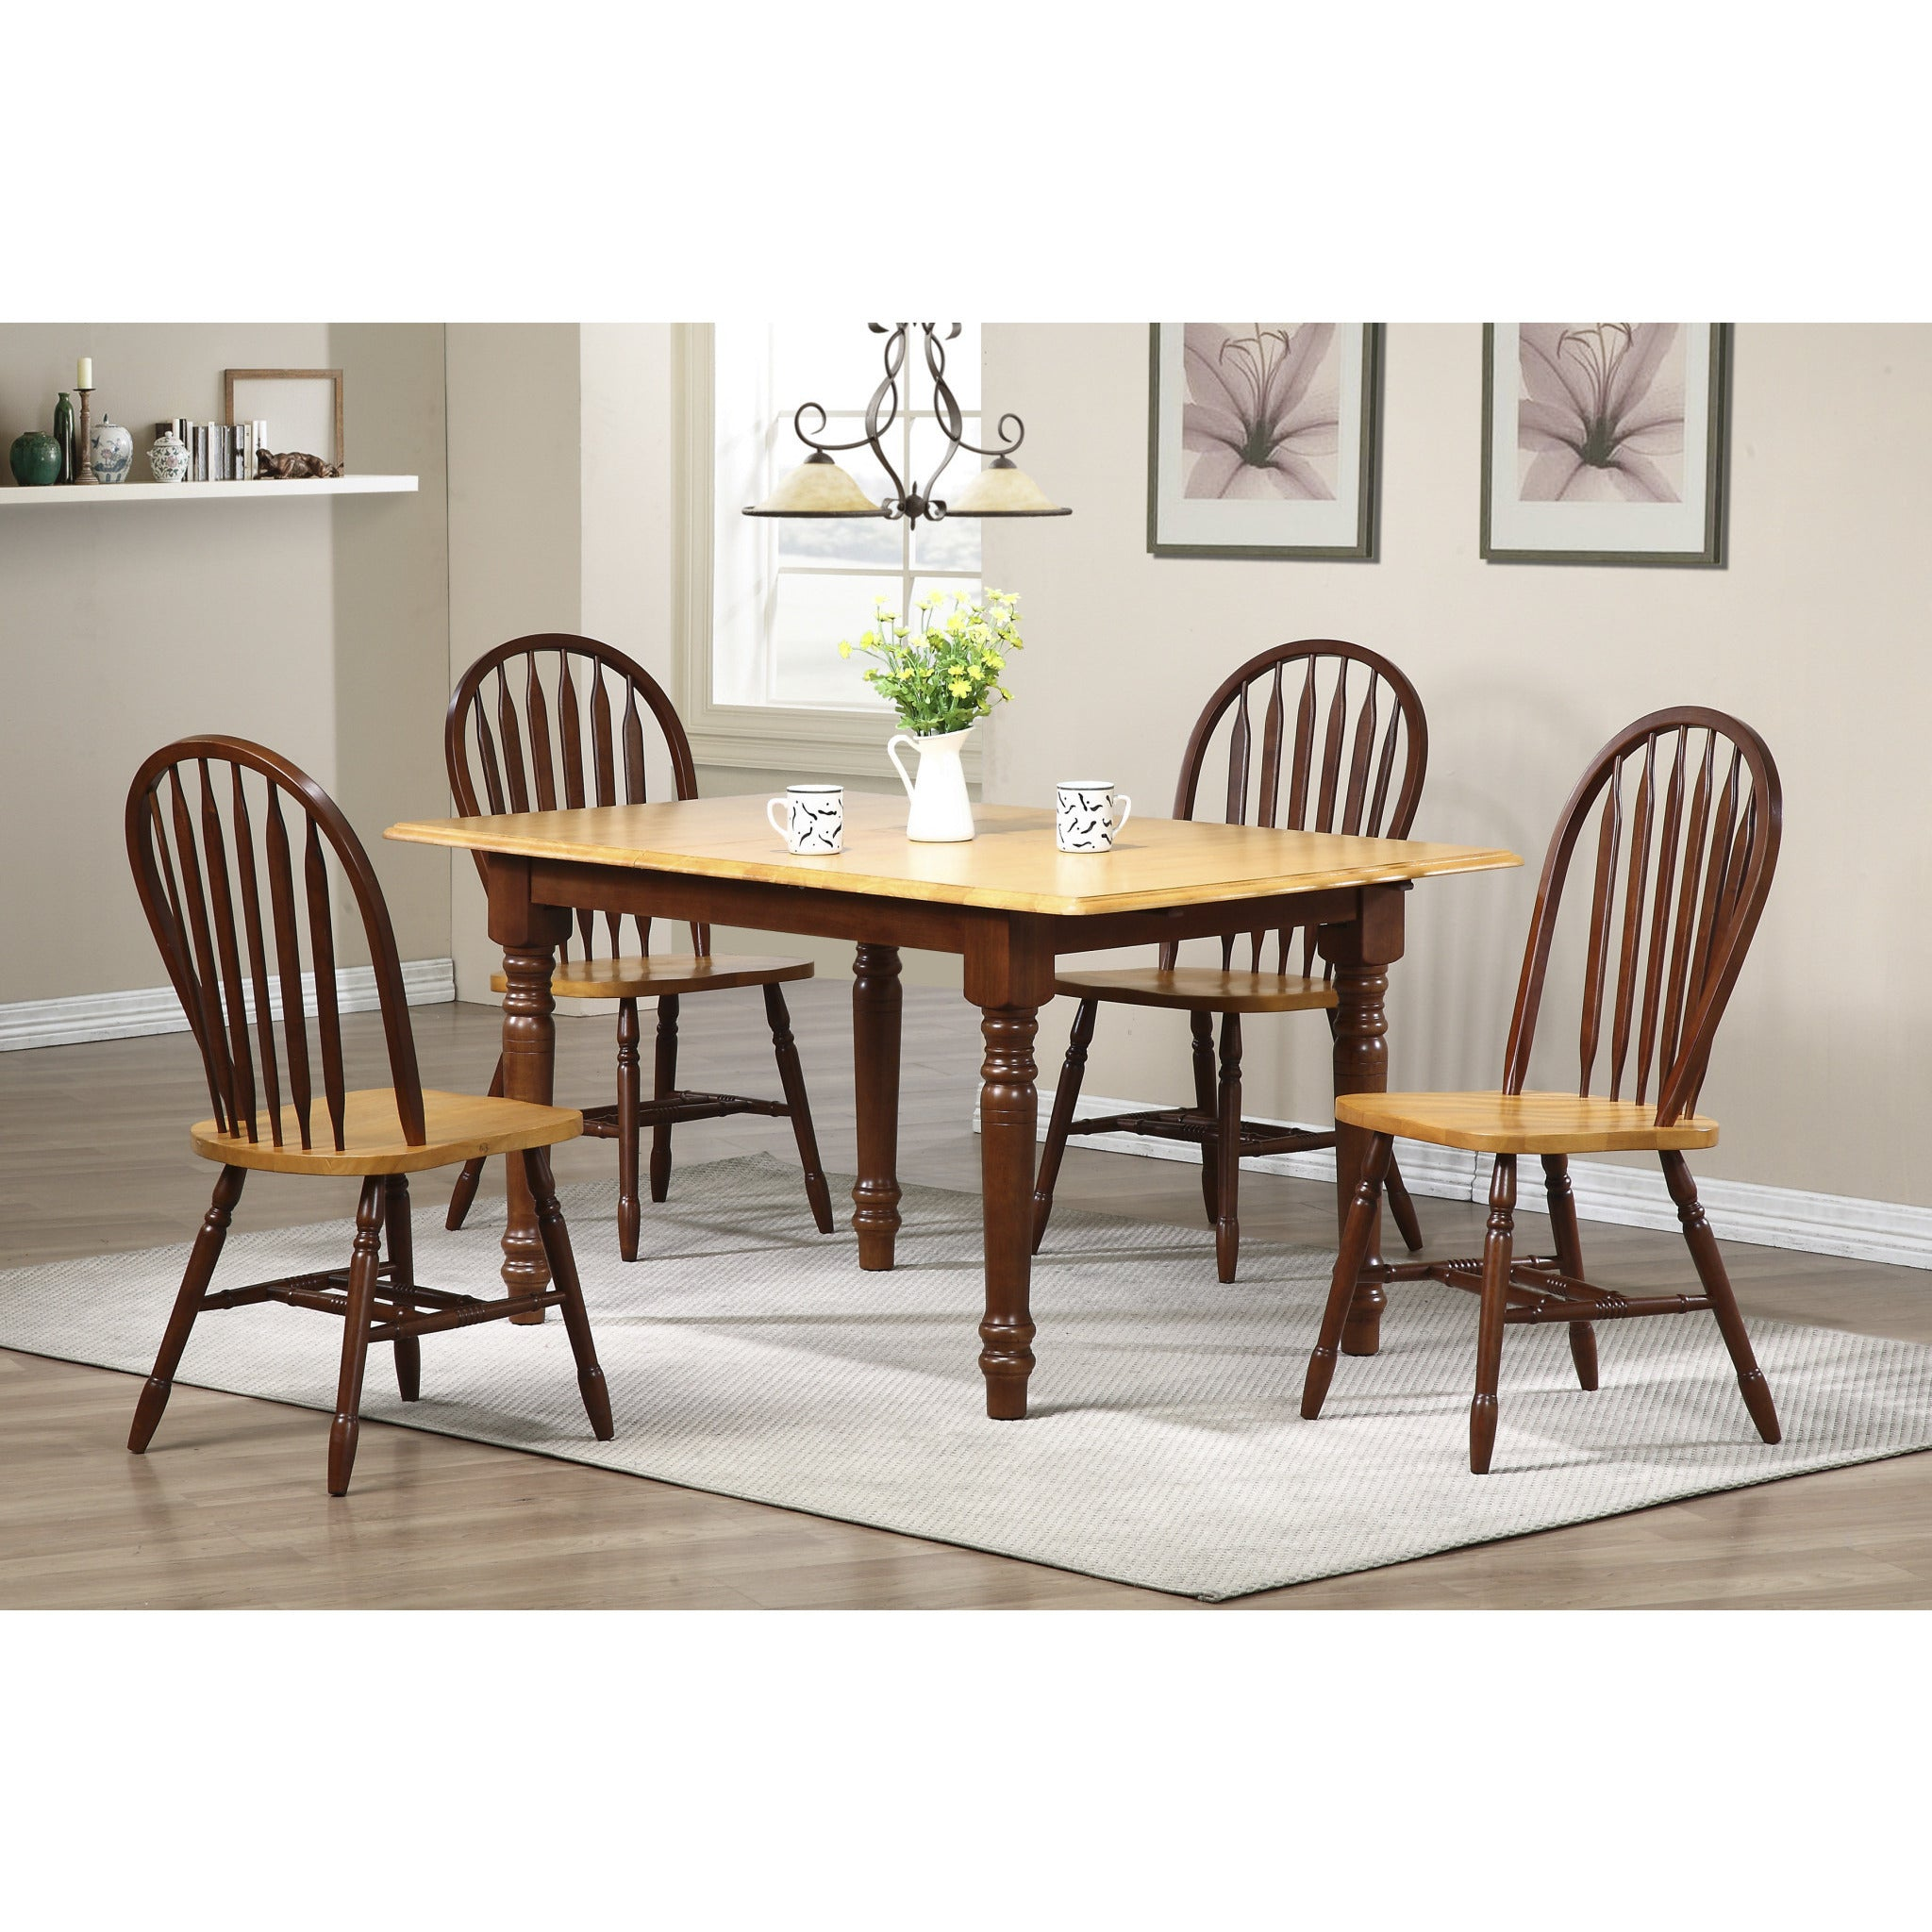 Buy Dining Set line Best Dining Sets line